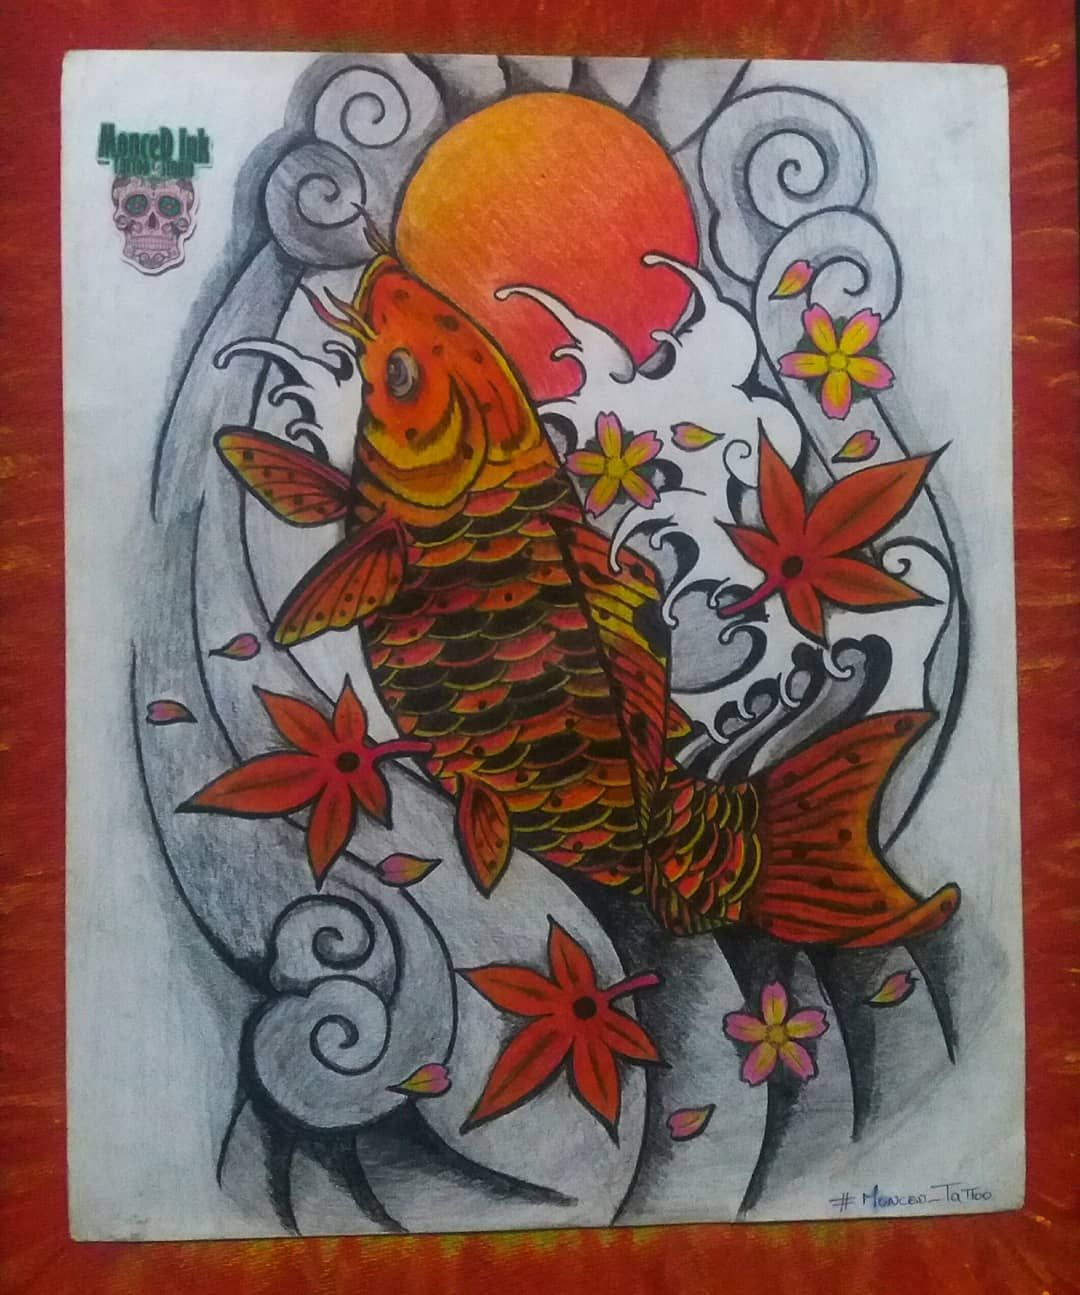 Fish koi.. #monced_ink #maturinmonagas #monagas #maturin #tipuromaturin #tipuro #venezuela #venezuelatattoo #tattoovenezuela #tattoos #tattoo #tattooed #tattoodesign #tattooojapones #koi #koifish #koitattoo #koifishtattoo  #tattooworkers #tattooart #tattooartist #tattooworld #tattoocommunity #tattoosociety